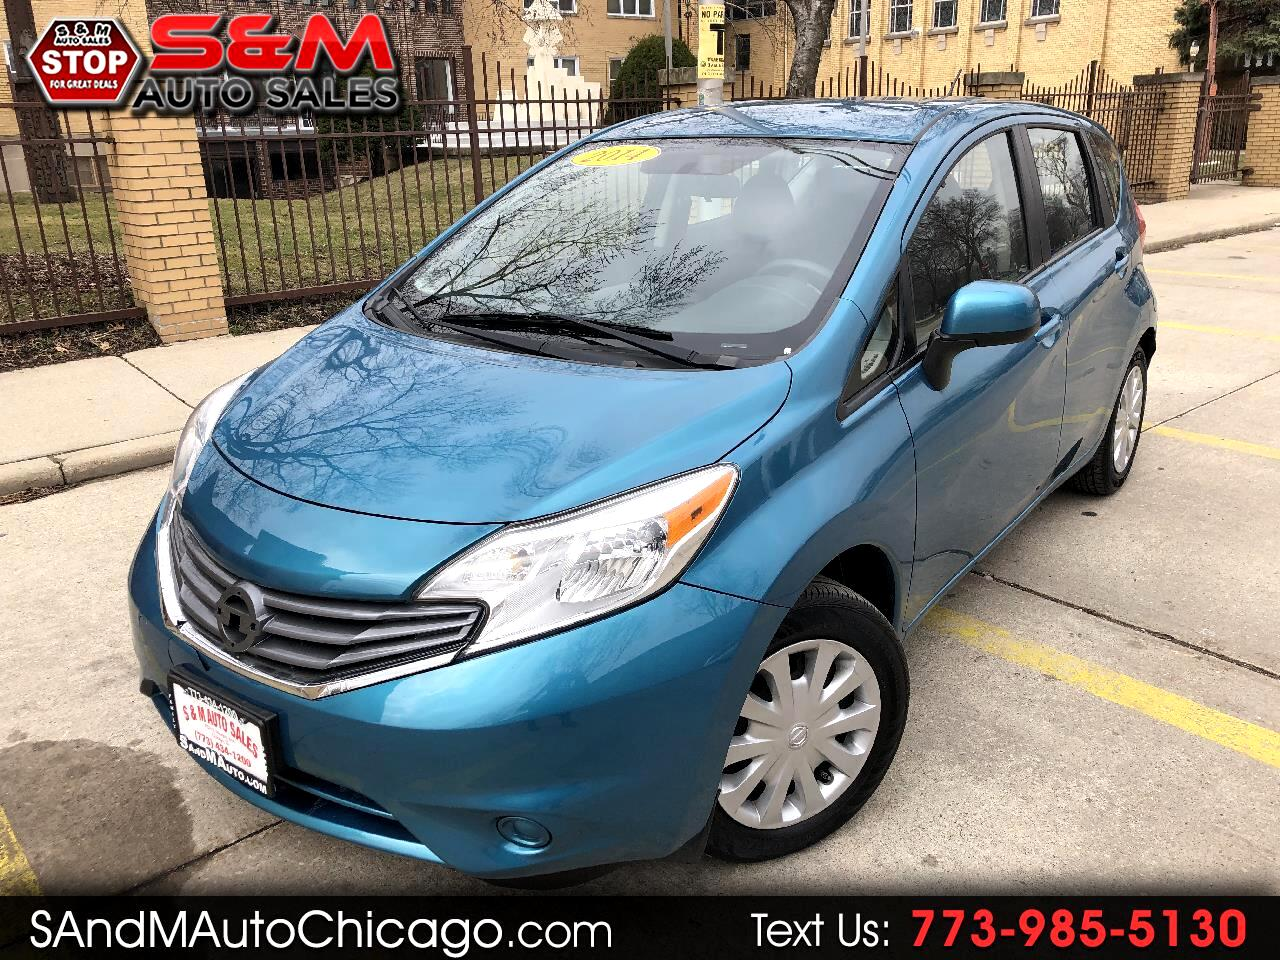 2014 Nissan Versa Note 5dr HB Manual 1.6 S